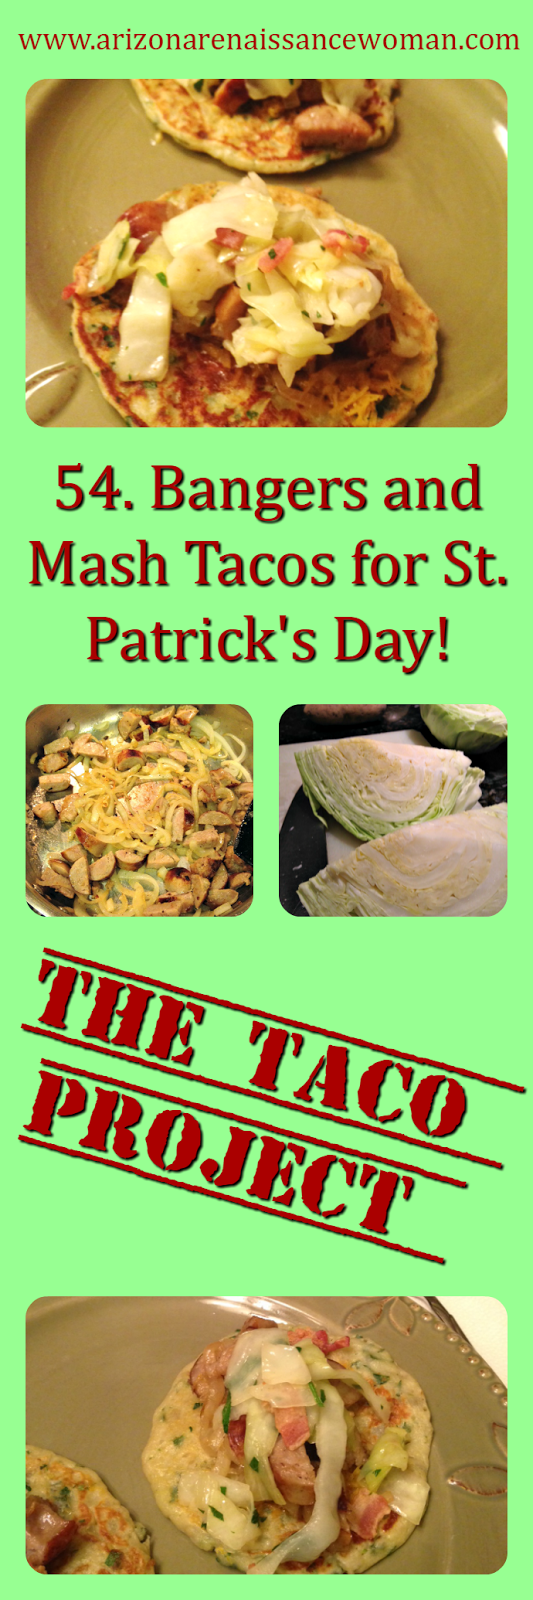 Bangers and Mash Tacos for St. Patrick's Day Collage